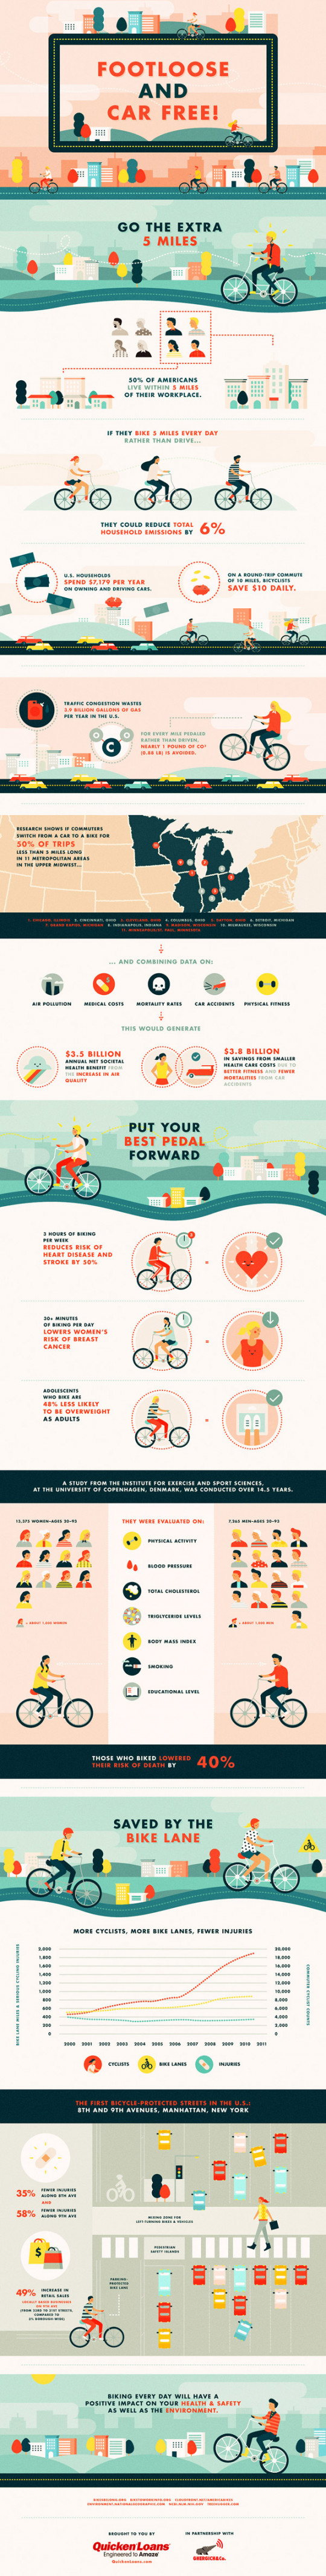 Footloose and Car Free! How Biking Can Improve Your Health and the Environment